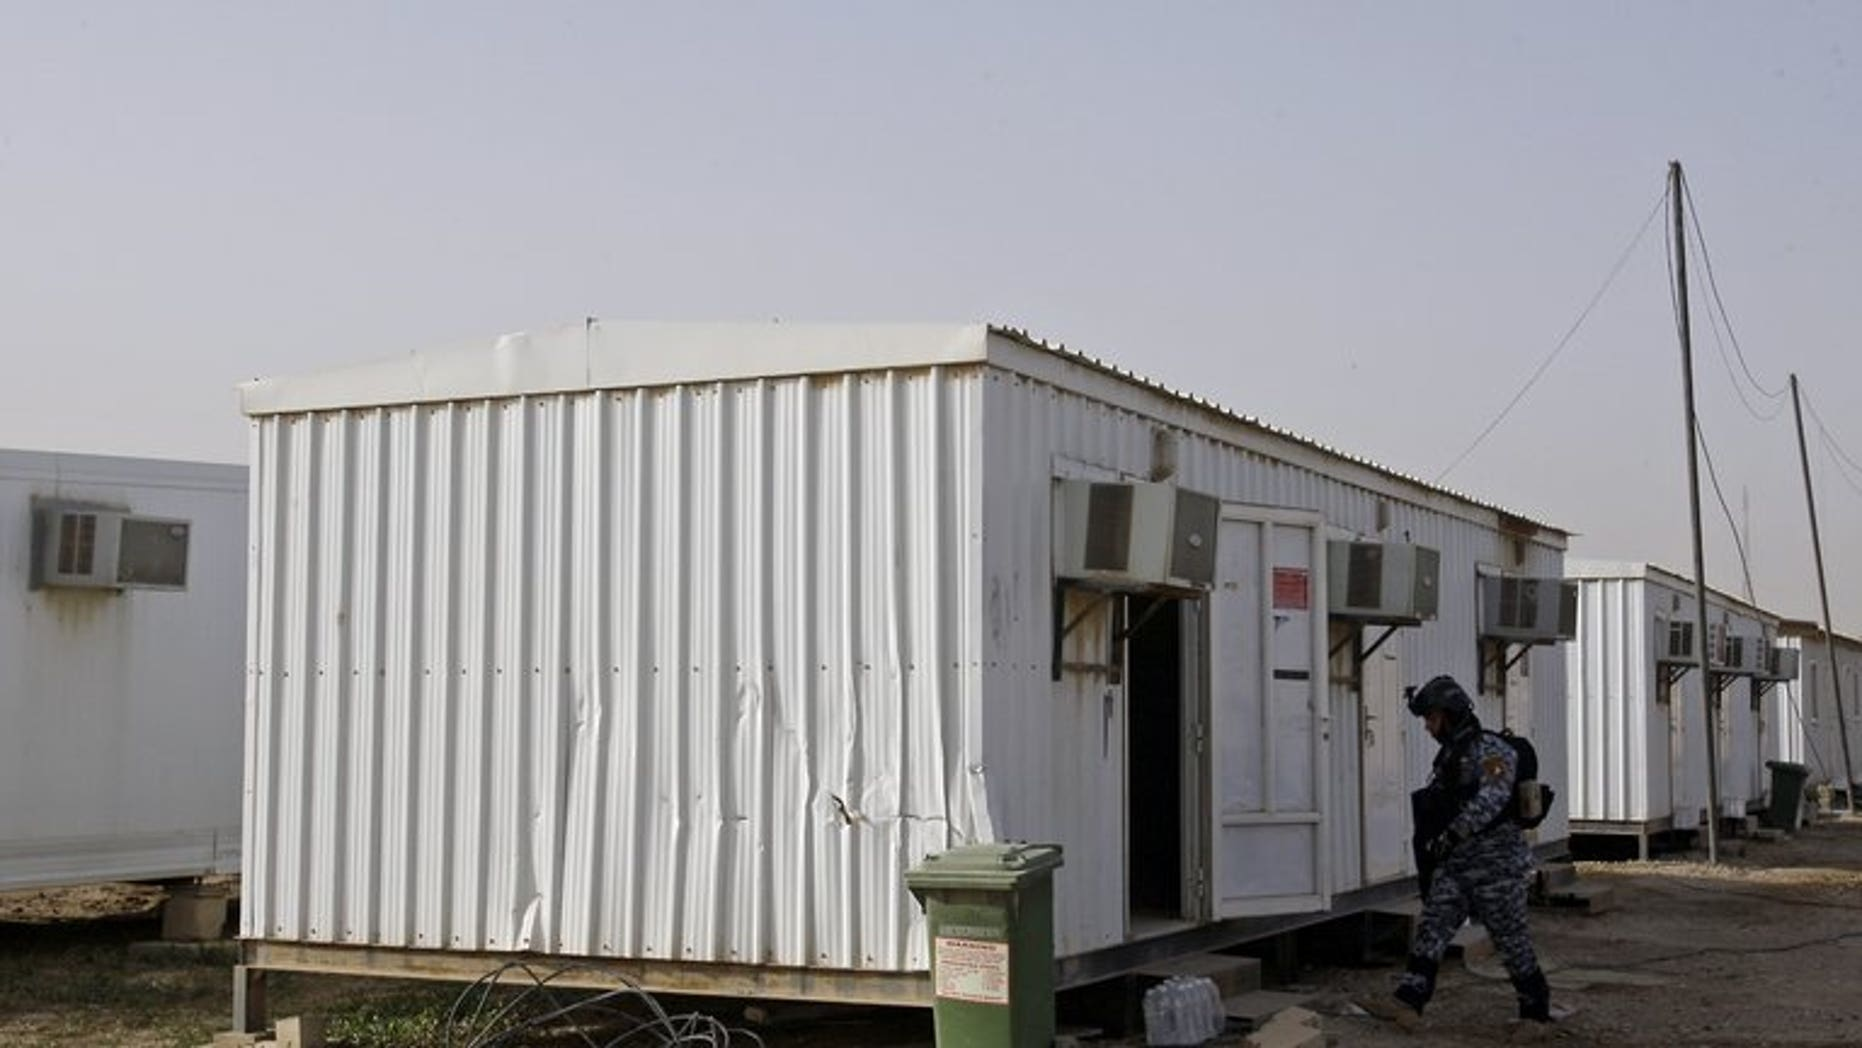 An Iraqi soldier inspects prefabricated houses at Camp Liberty, on February 17, 2012. Seventy-one members of an exiled Iranian opposition group based at Camp Liberty have been relocated to Albania, the UN said, a week after the camp suffered deadly mortar attacks.